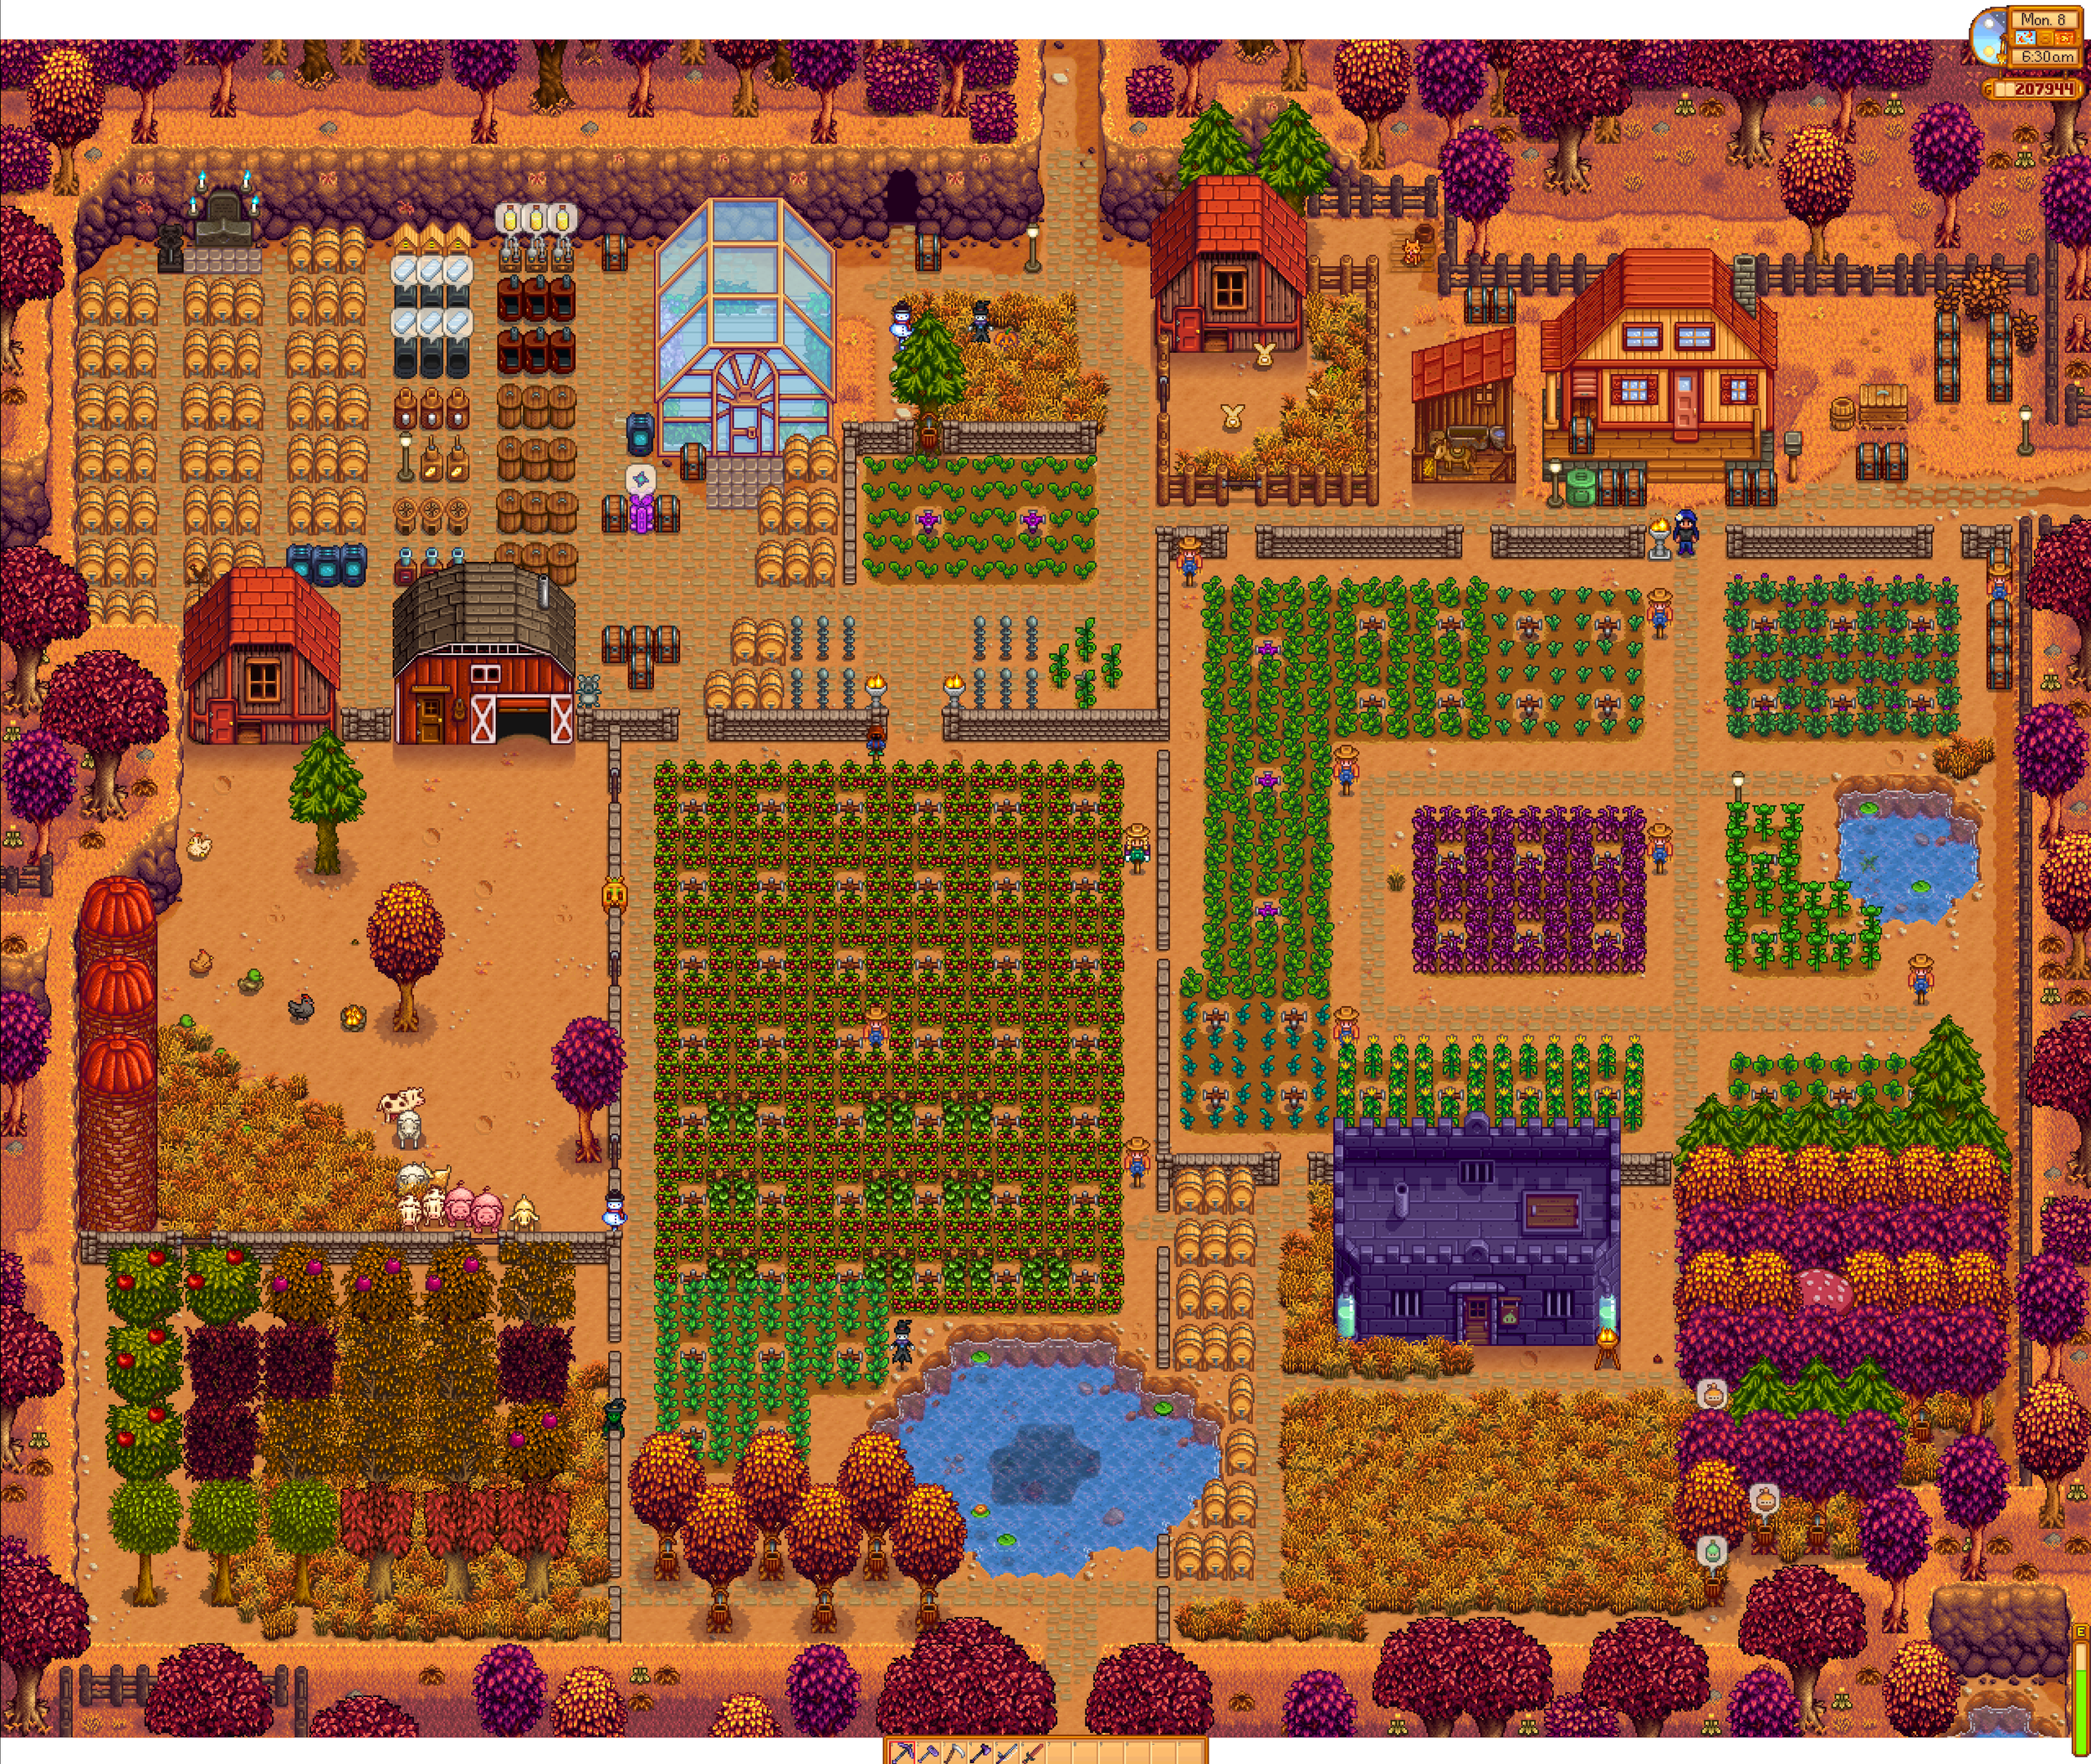 After 2 1/2 in game years and 95 hours in game, I present to you: Happy Farm.